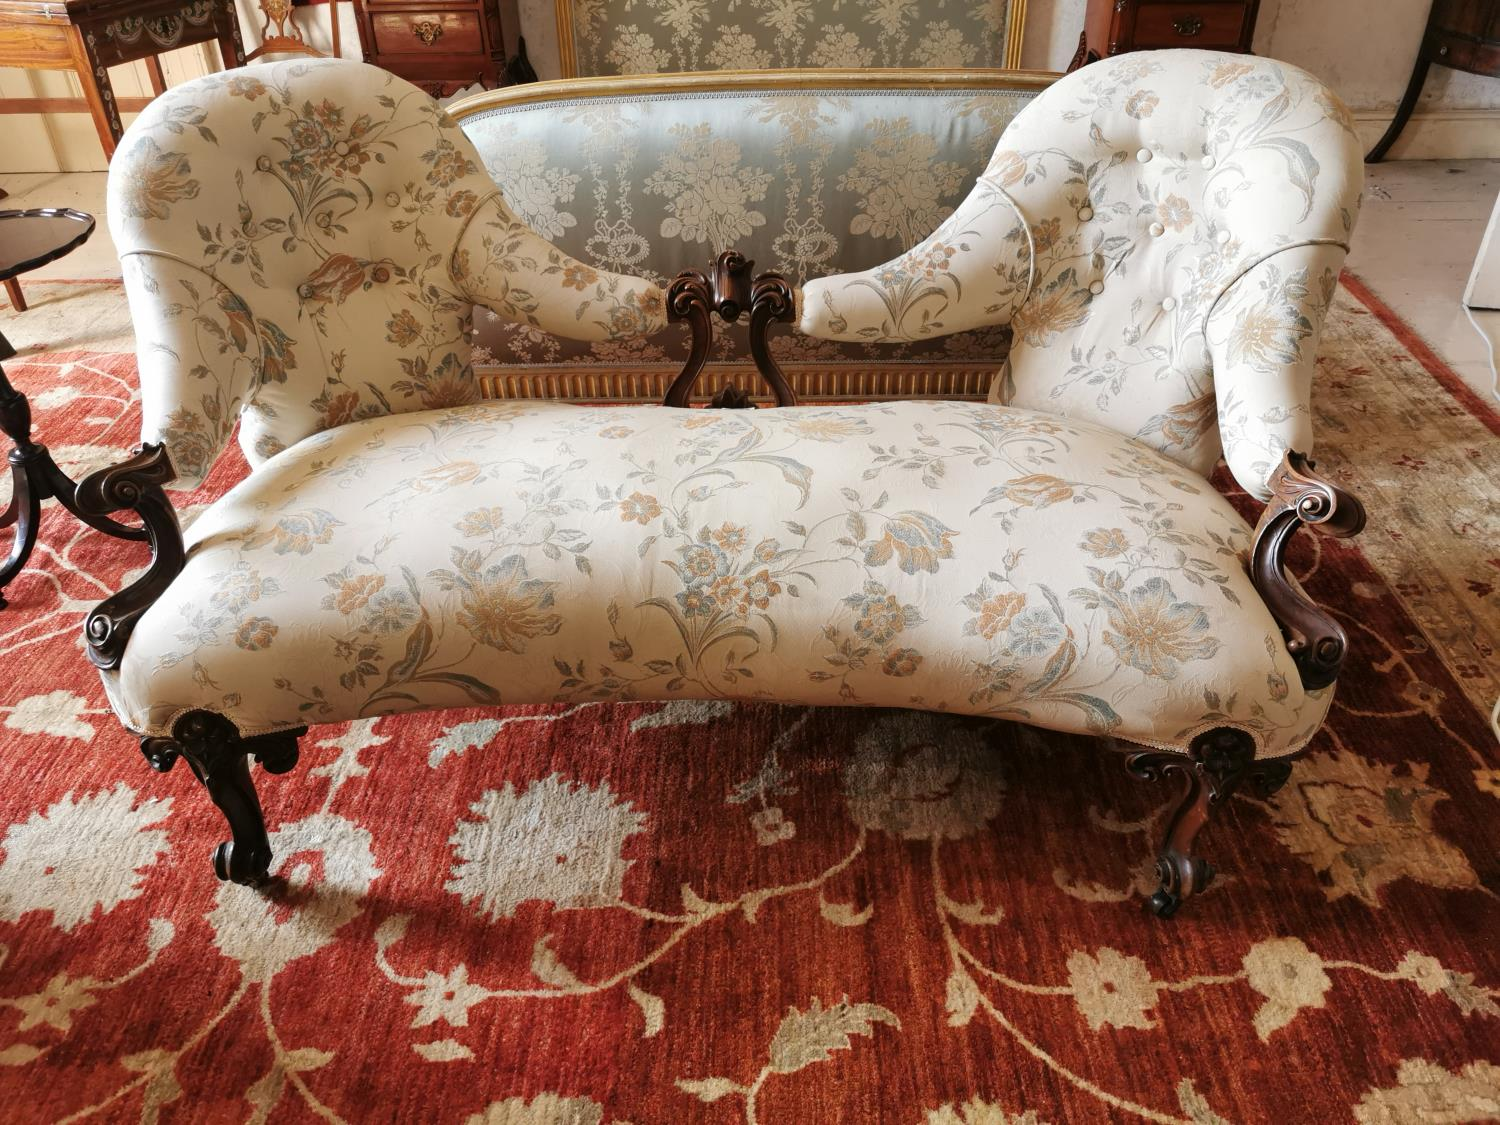 19th C. mahogany and upholstered conversation seat.